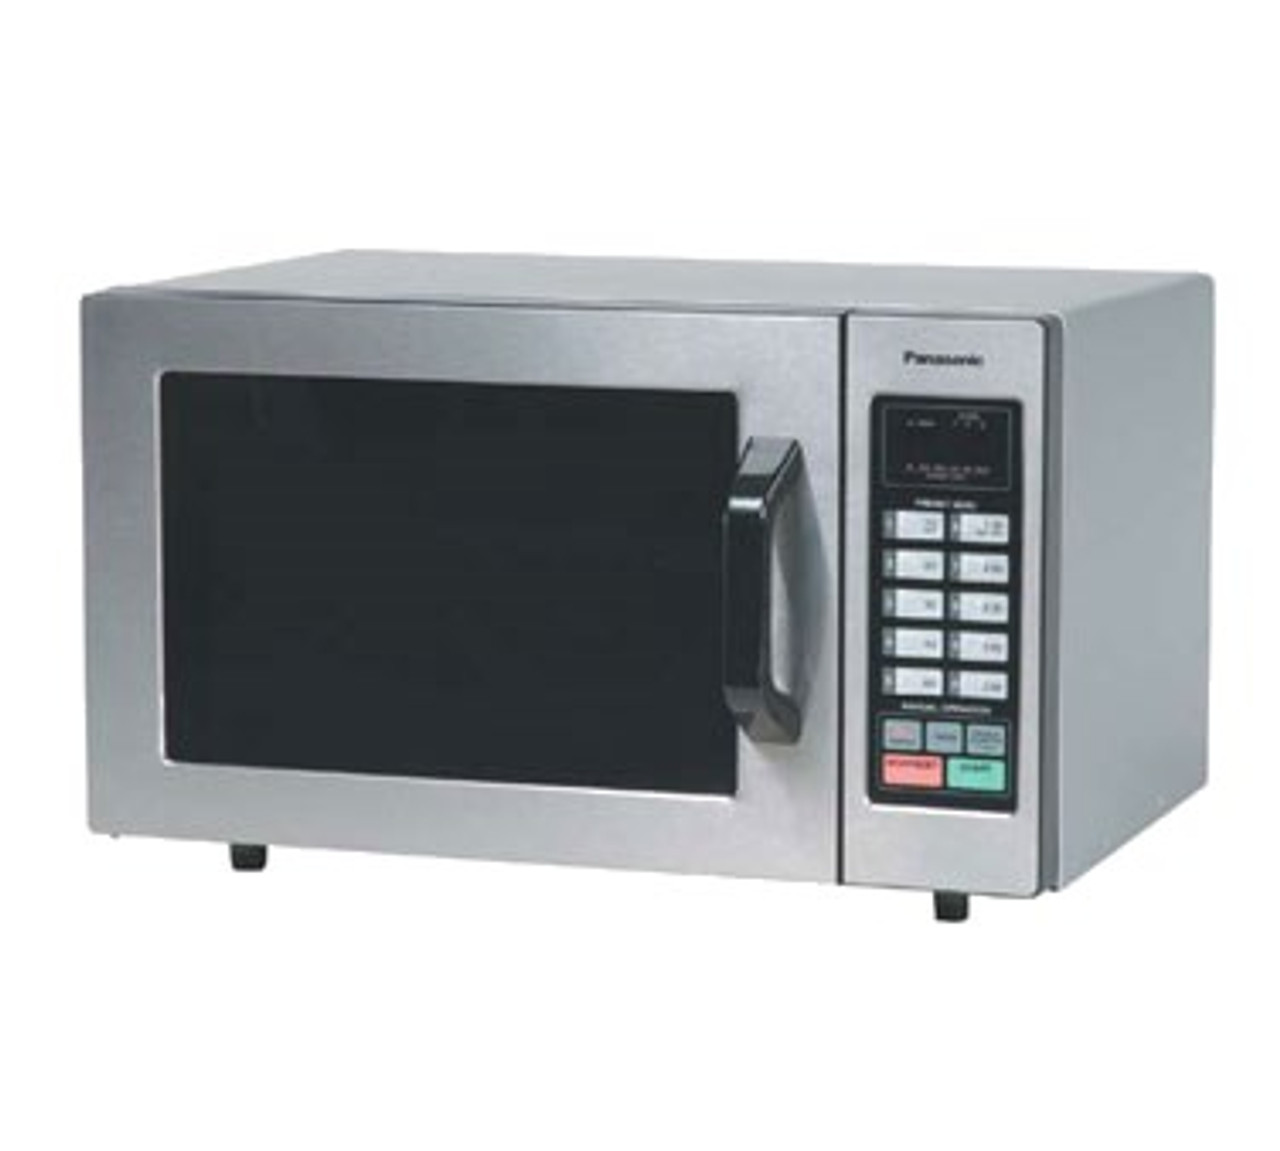 """PRO Commercial Microwave Oven, 1000 watts, 0.8 cu. ft. capacity, (6) power levels, 2- & 3-stage cooking, 20 program memory capacity, touch control pad with Braille, 99-minute timer, programmable and manual operation, program list/cycle counter, self diagnostics, tone control, bottom energy feed, interior light, see-through door with """"grab & go"""" handle, stainless steel front, 120v/60/1-ph, 13.4 amps, cord, NEMA 5-15P, cULus, NSF"""